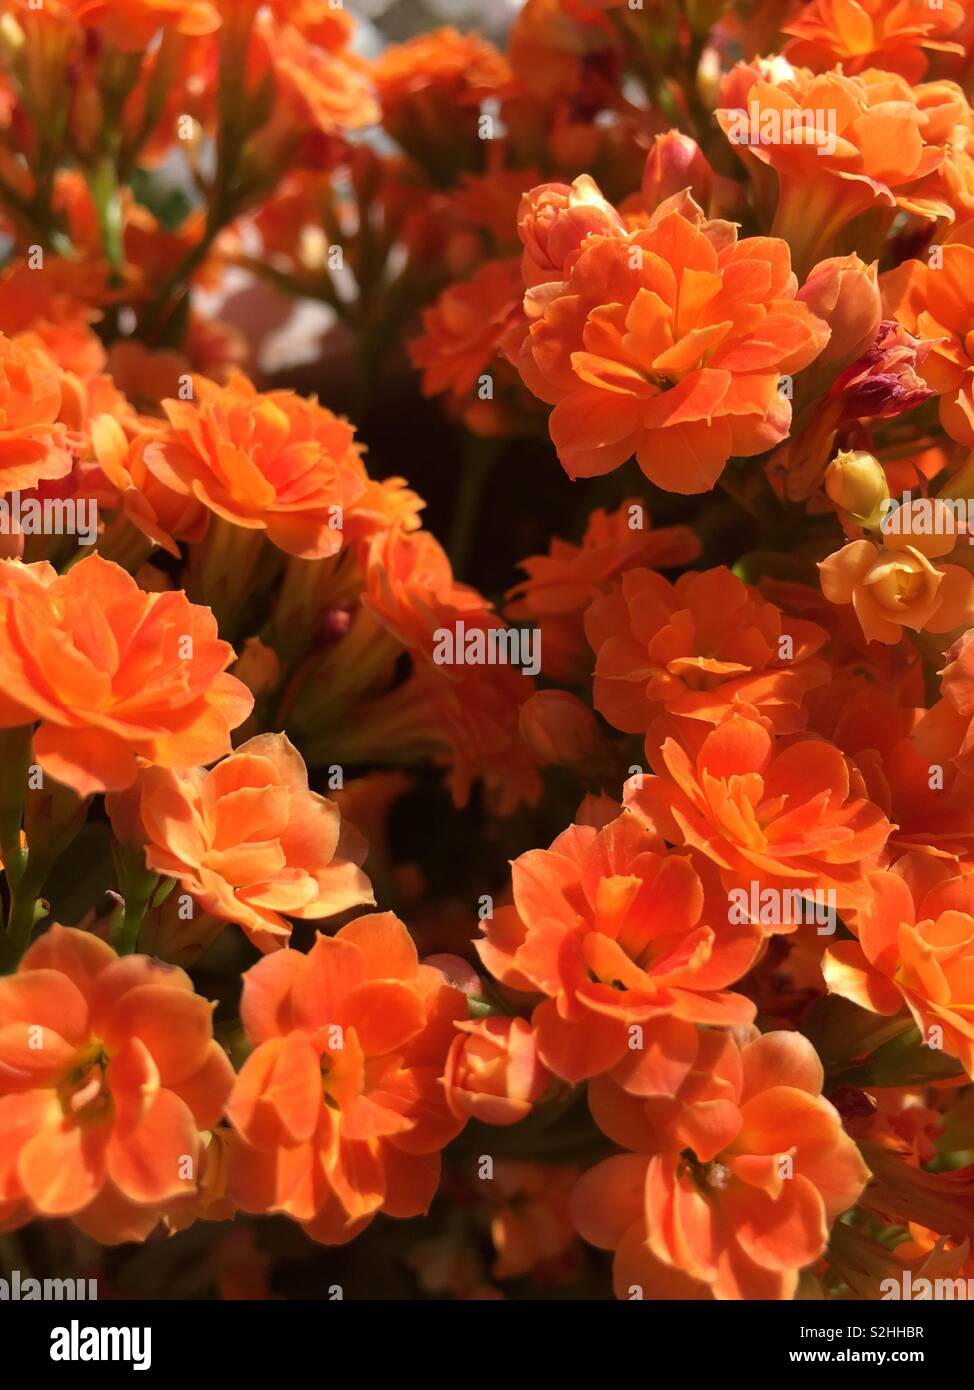 Close up to the bright orange flowers,nature is so beautiful,each bloom seems to be in conversation with the others - Stock Image